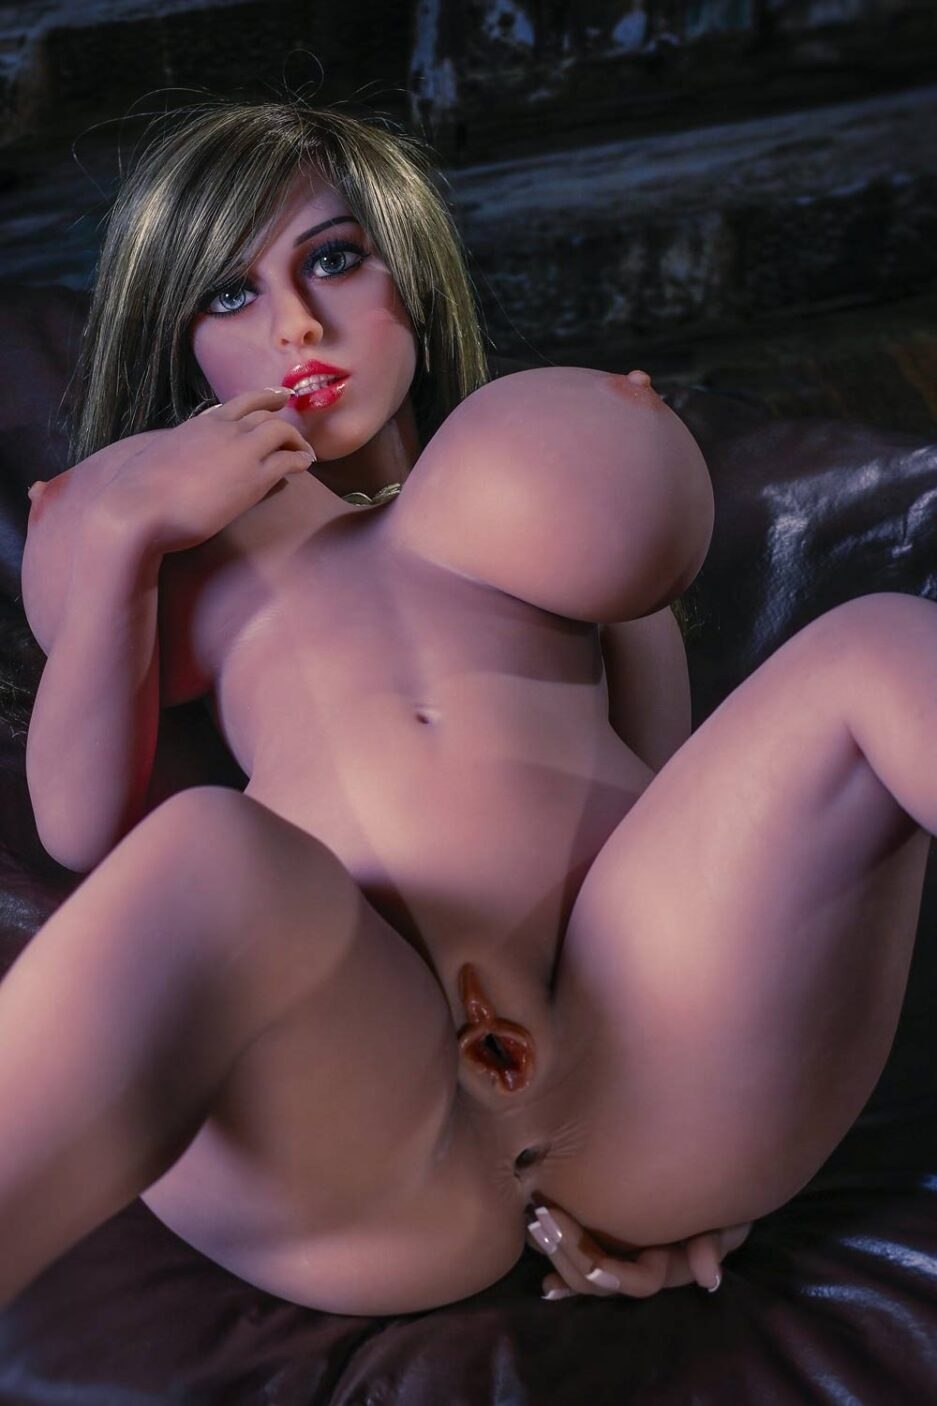 Big breasted sex doll showing vagina